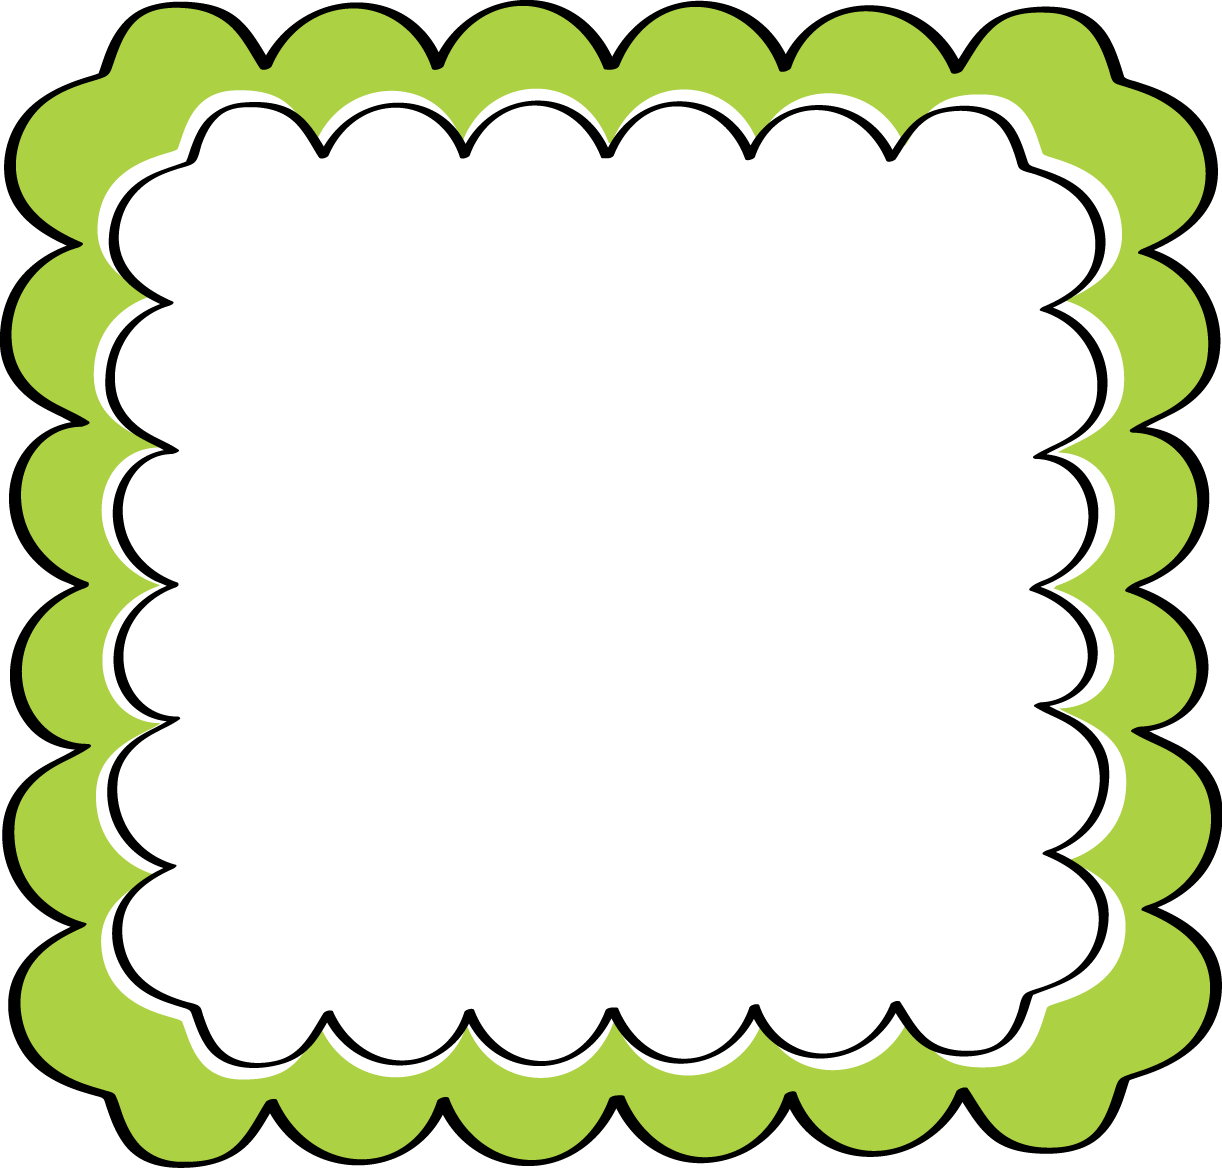 school theme border clipart green scalloped frame free clip art rh pinterest com free borders and frames clipart free clip art picture frame border